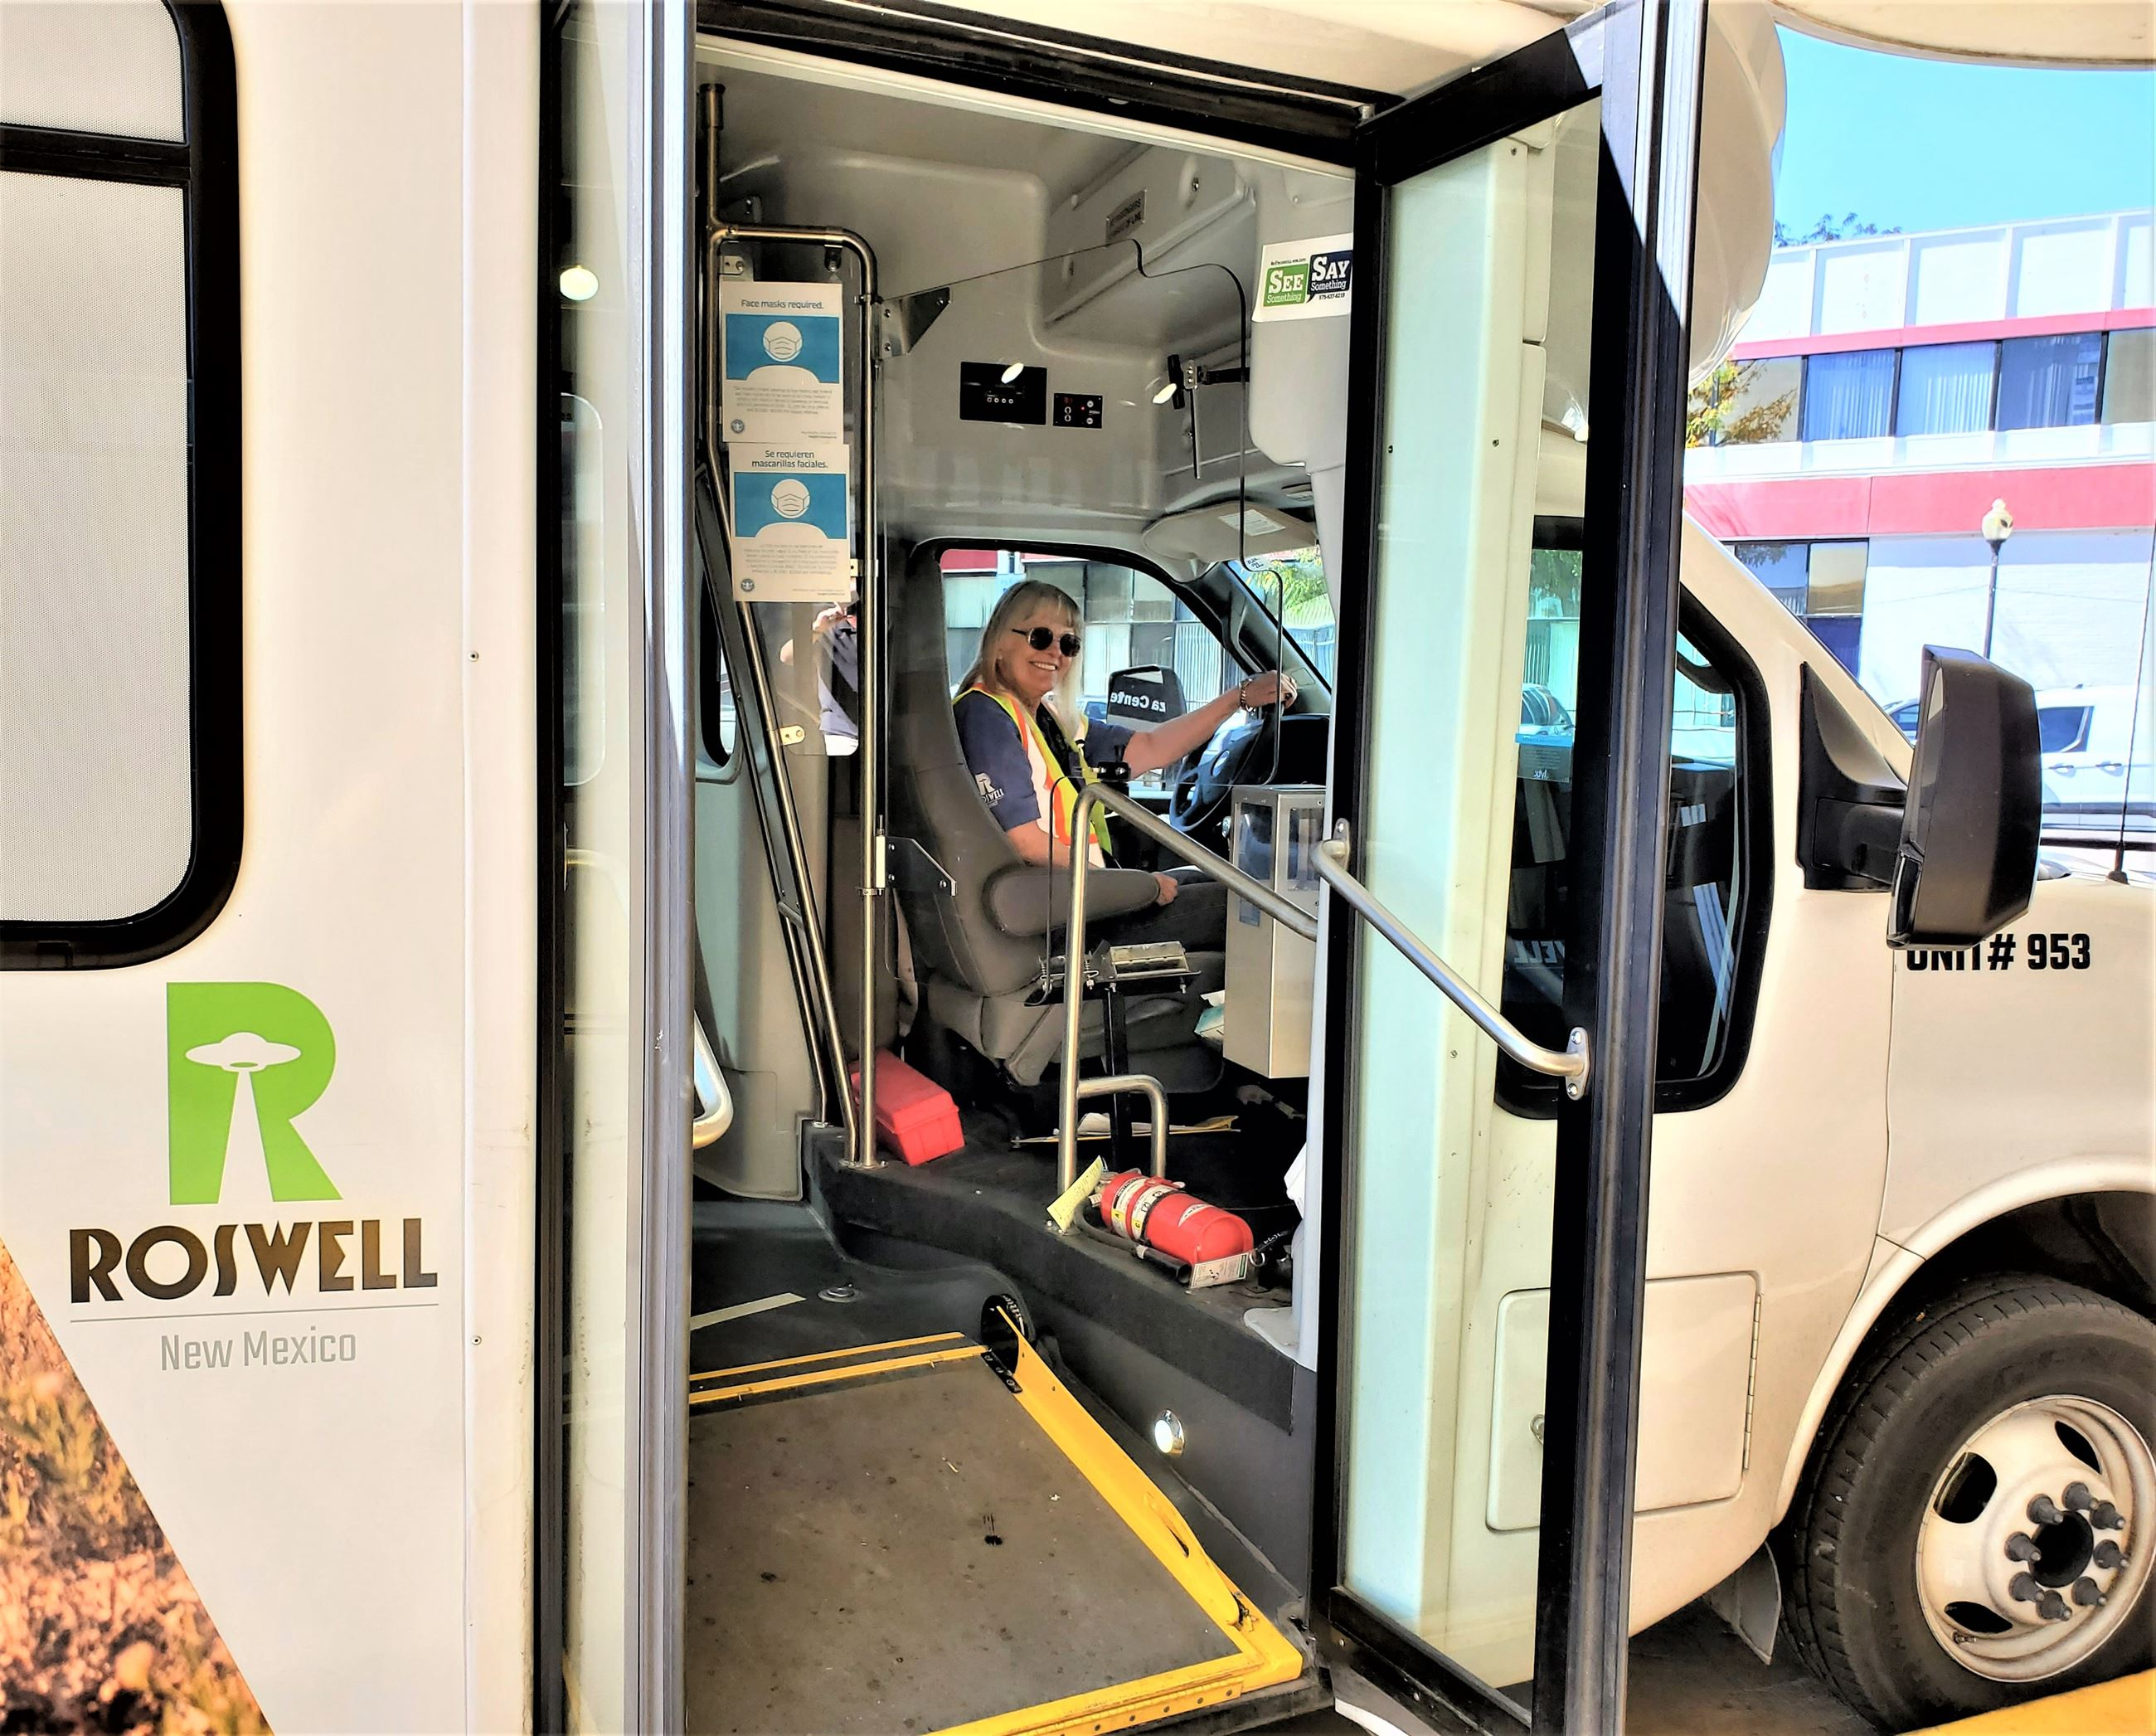 Roswell Transit driver Patricia Hernes